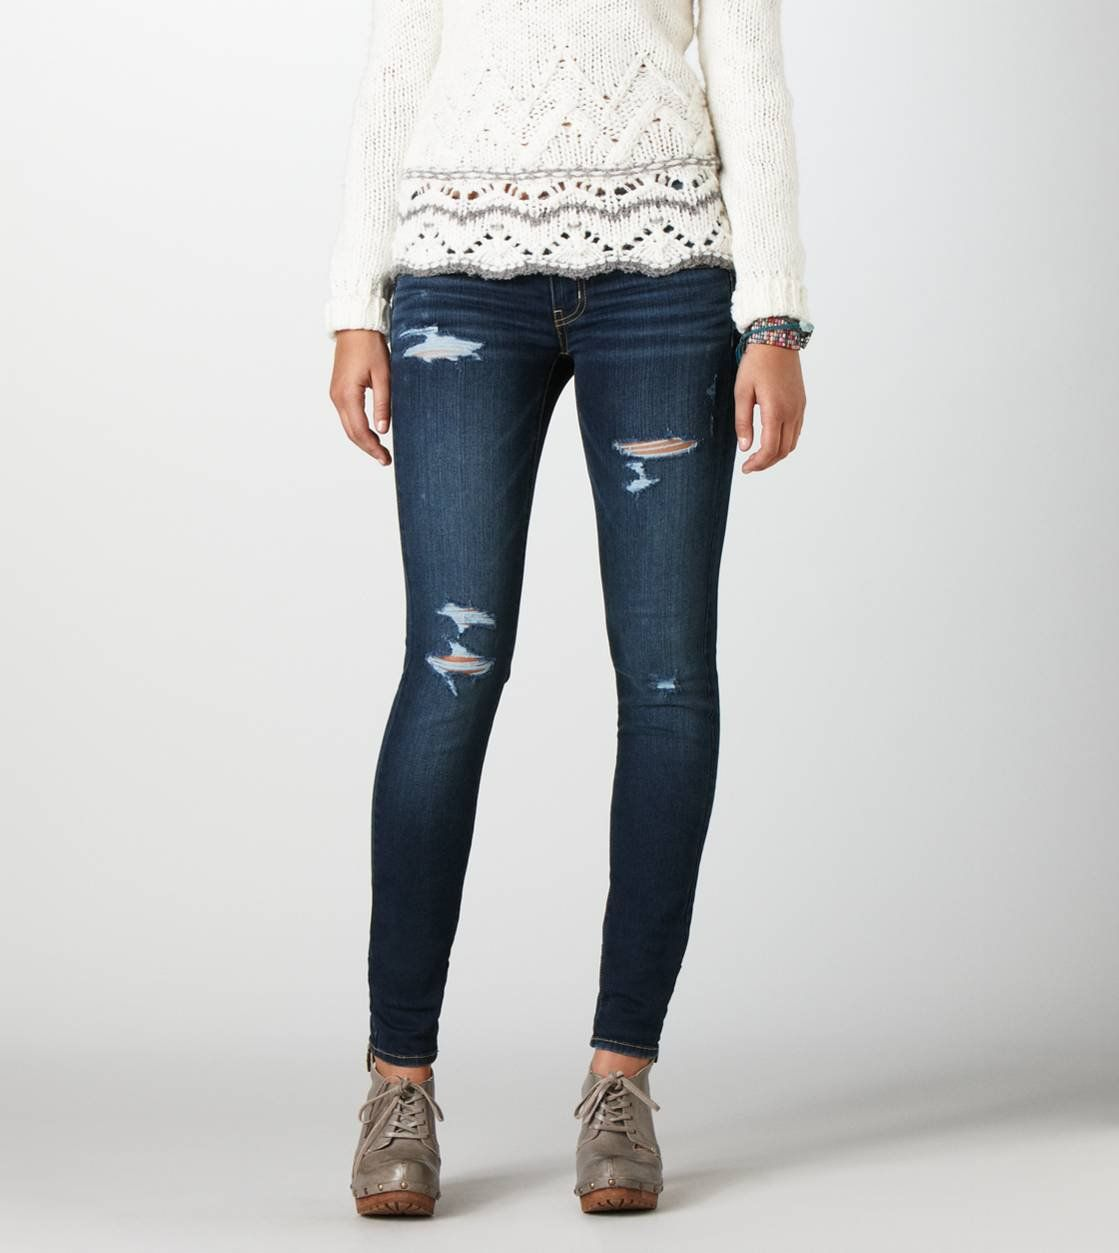 1919aeaf3ed Jegging | American Eagle Outfitters | Grunge,Punk,Indie,Urban ...